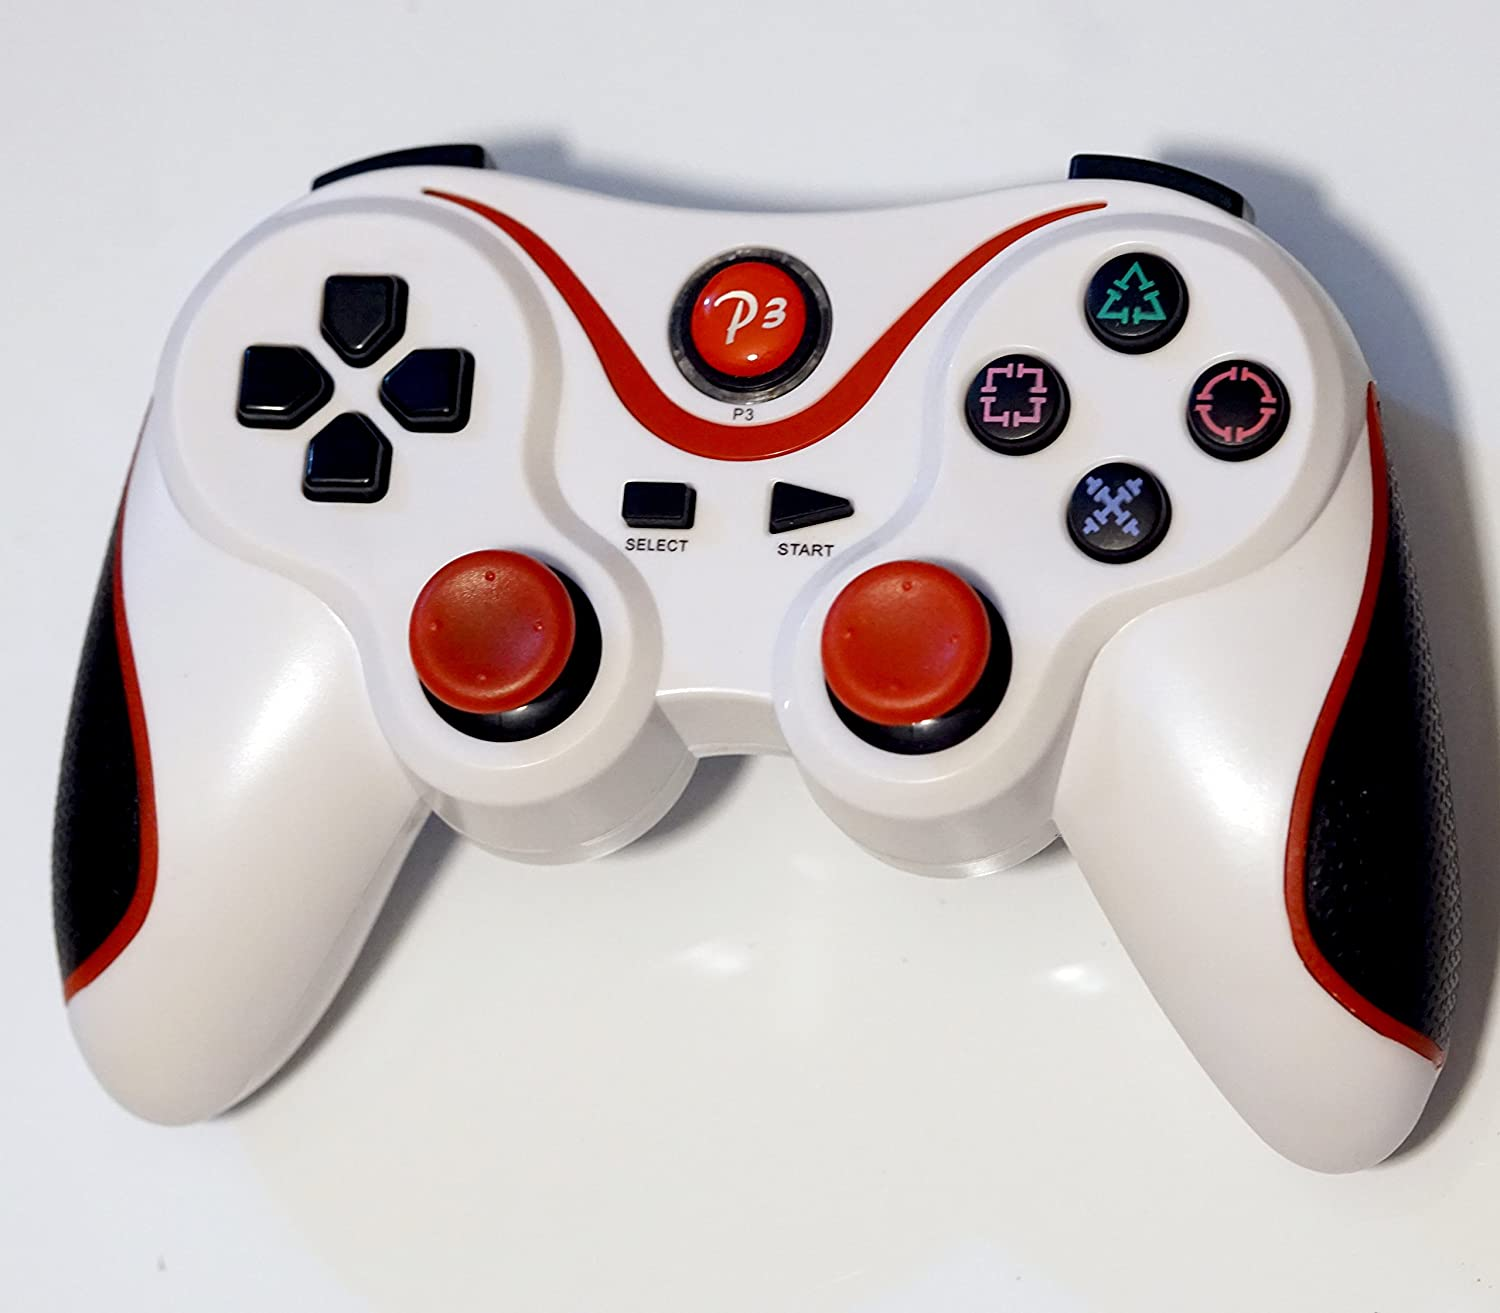 FSC Wireless Remote PS3 Controller Gamepad for use with PlayStation 3 (White&Red)